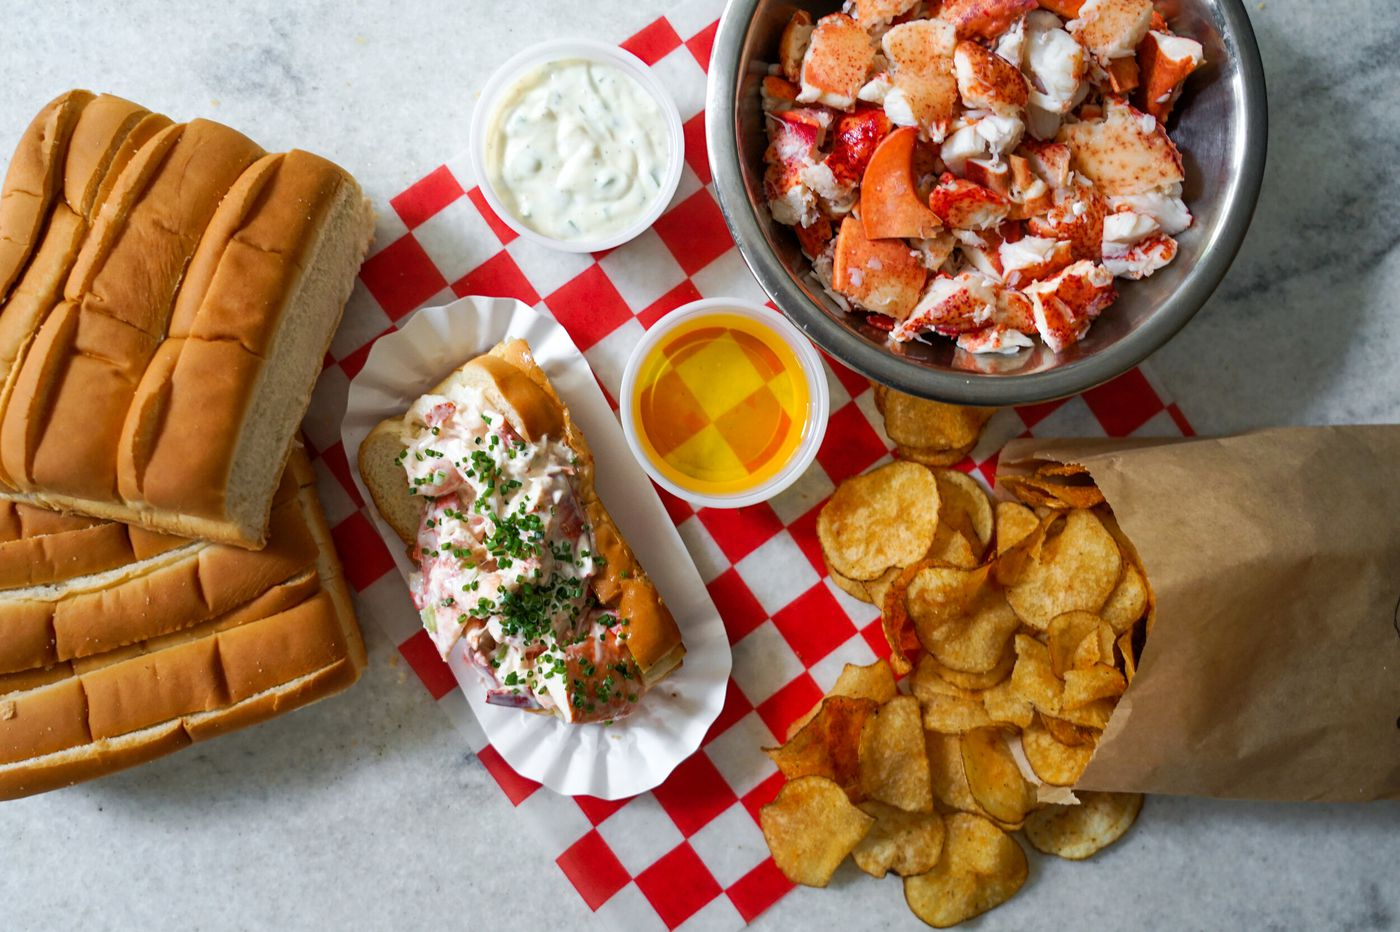 What to eat on July 4th weekend, whether you're going out or staying in